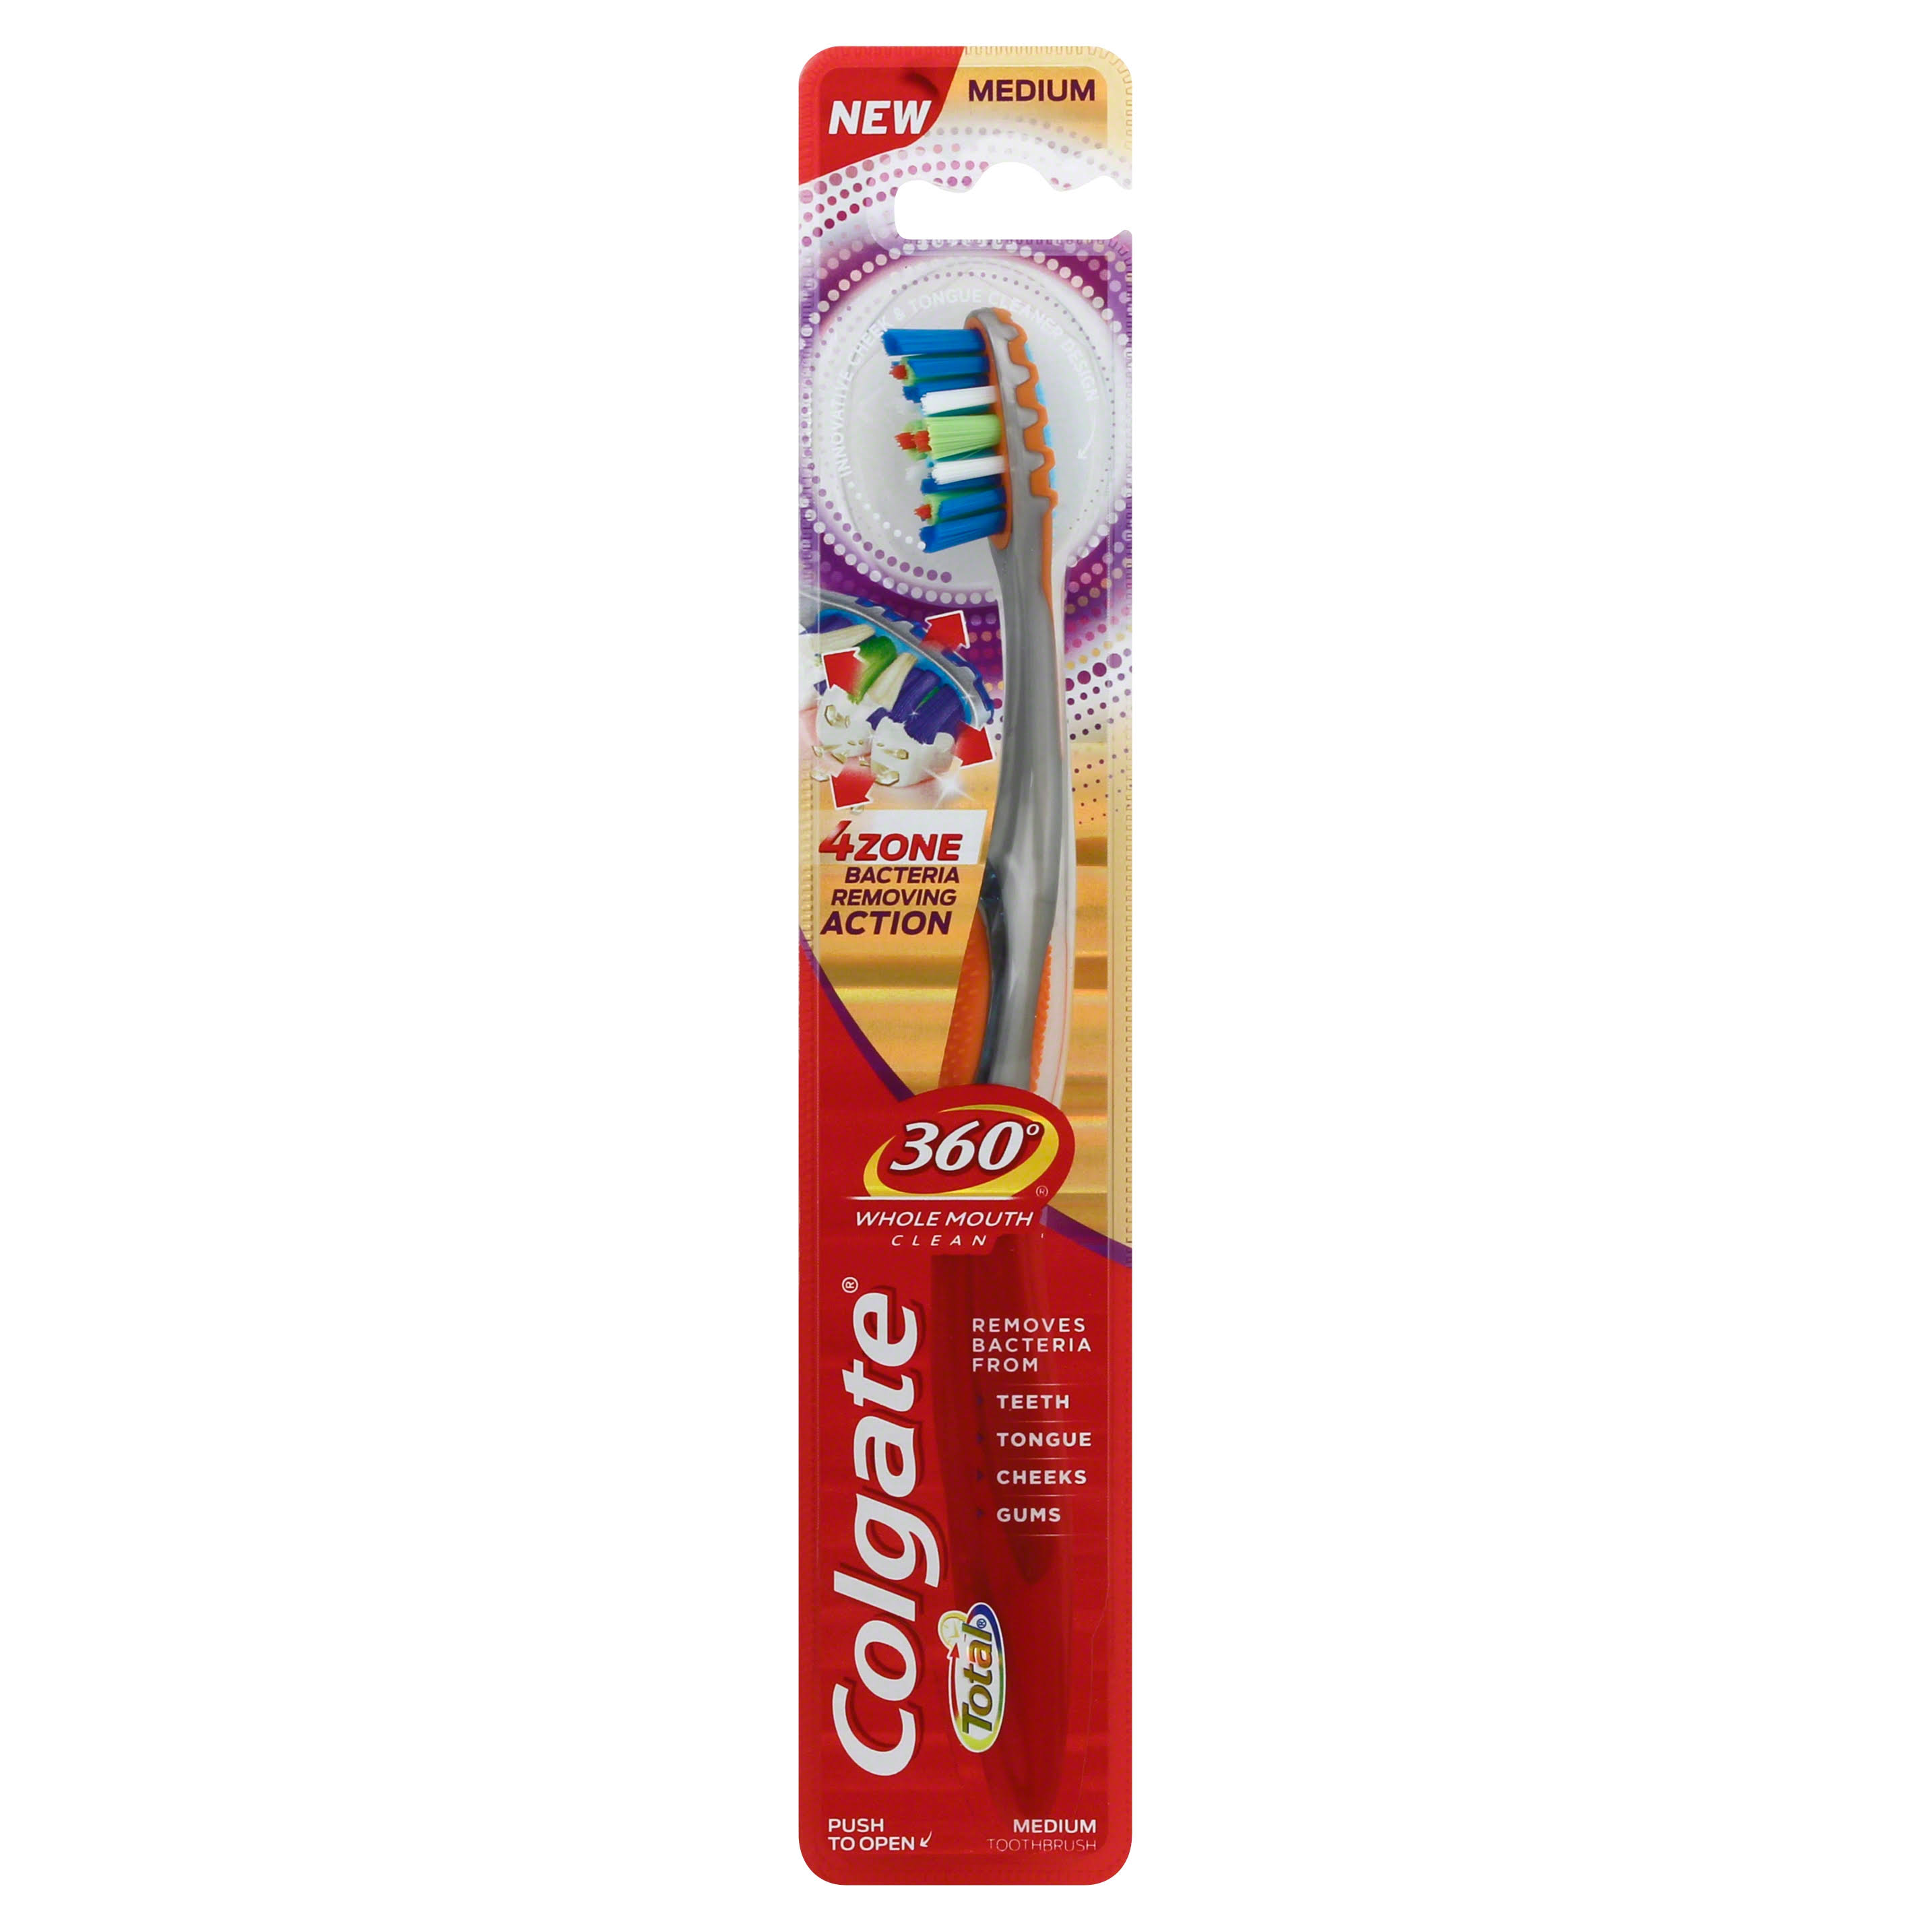 Colgate Total 360 Whole Mouth Clean Manual Toothbrush - 4 Zone, Medium, 2pk